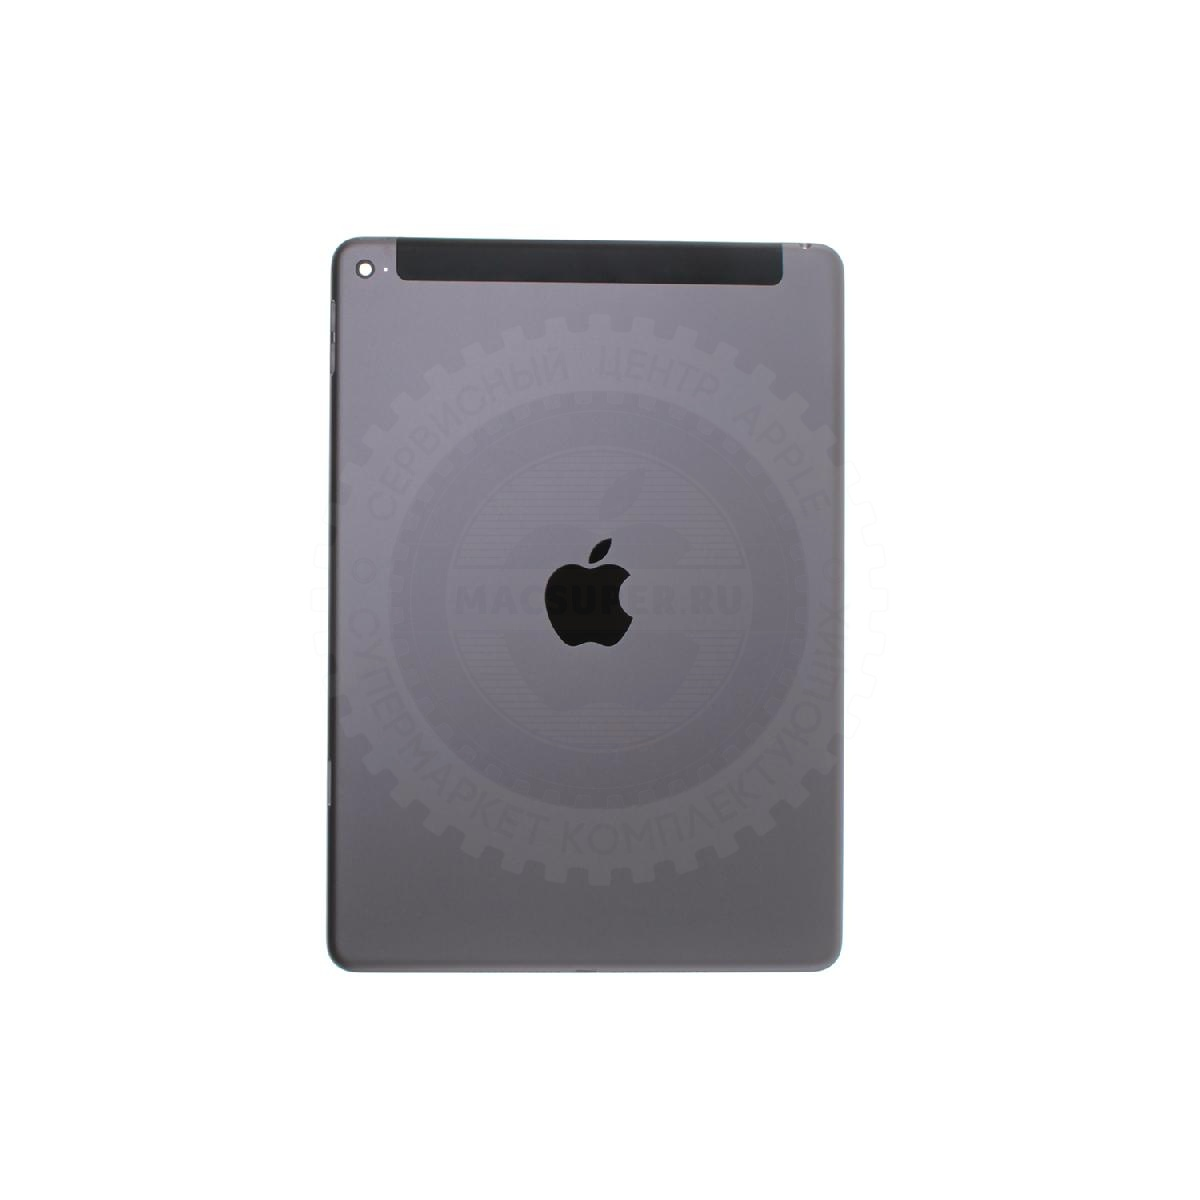 Купить корпус для ipad air 2 lte space gray